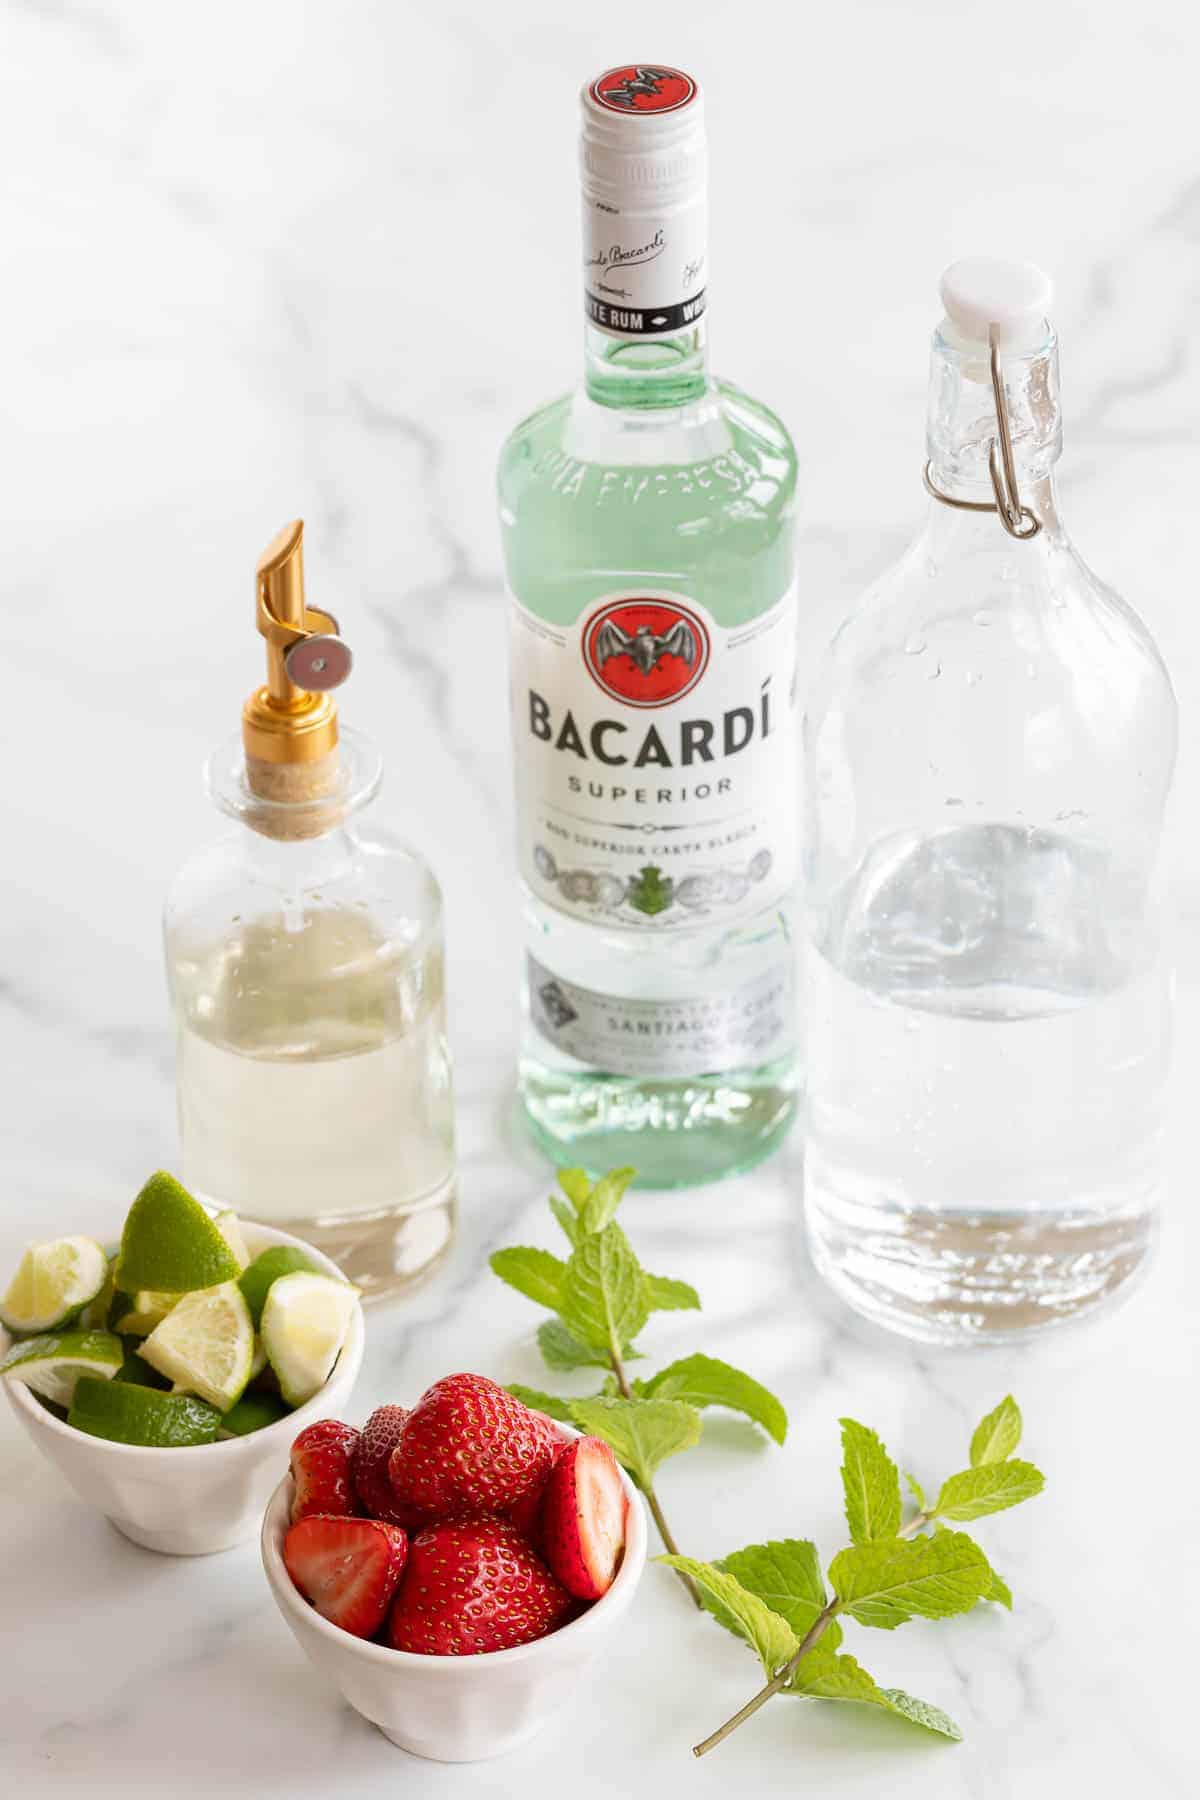 rum simple syrup club soda strawberries limes and mint on marble counter